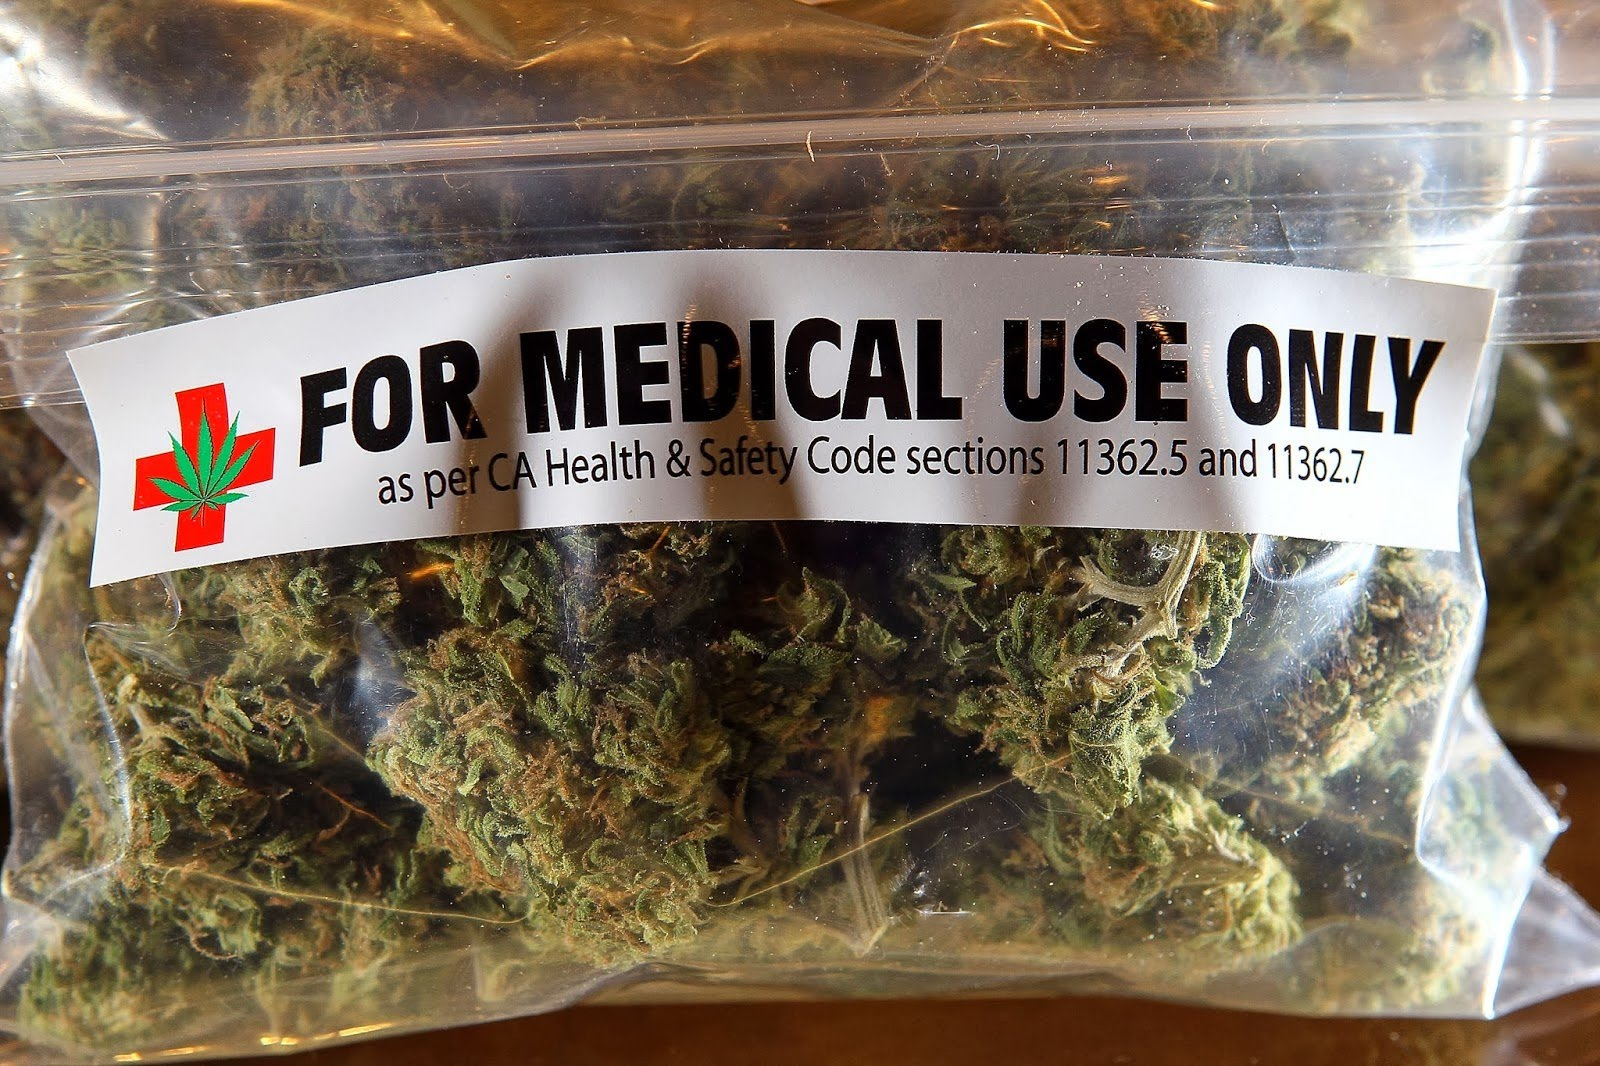 Is a CA medical marijuana card valid in every county?